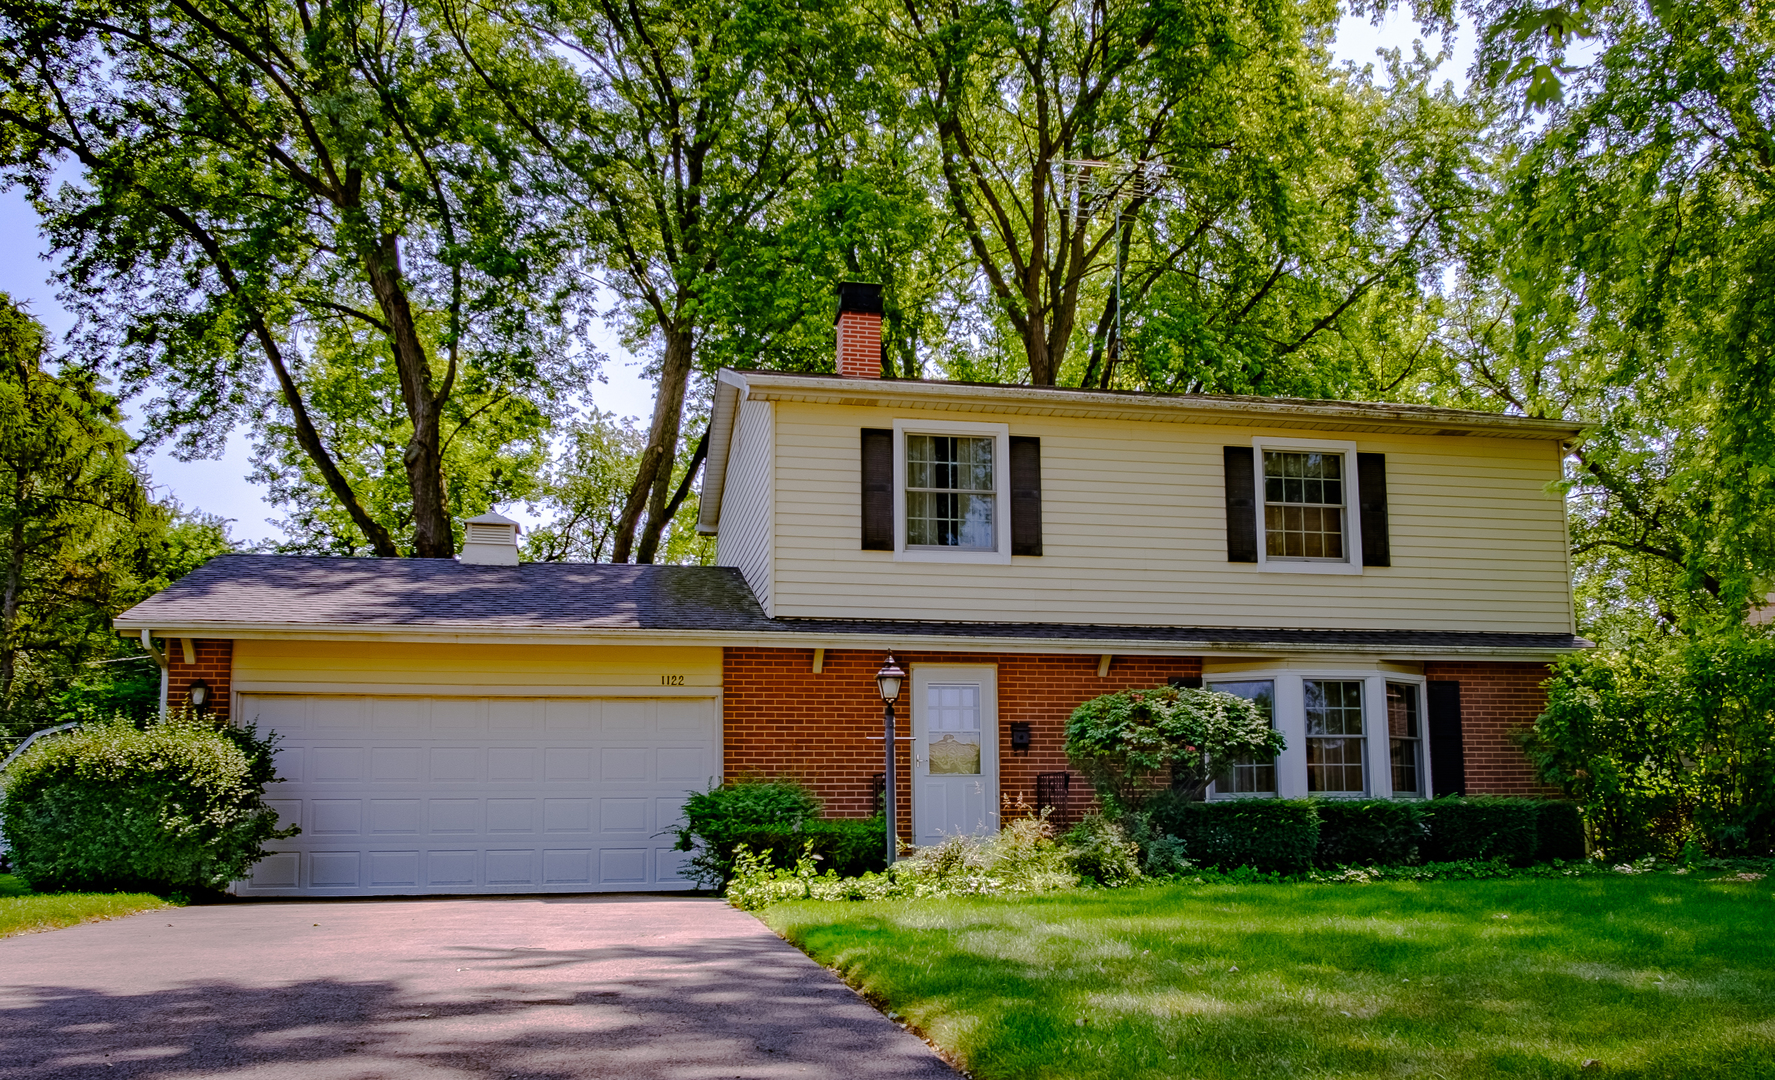 Photo for 1122 S 7th Street, St. Charles, IL 60174 (MLS # 10537612)